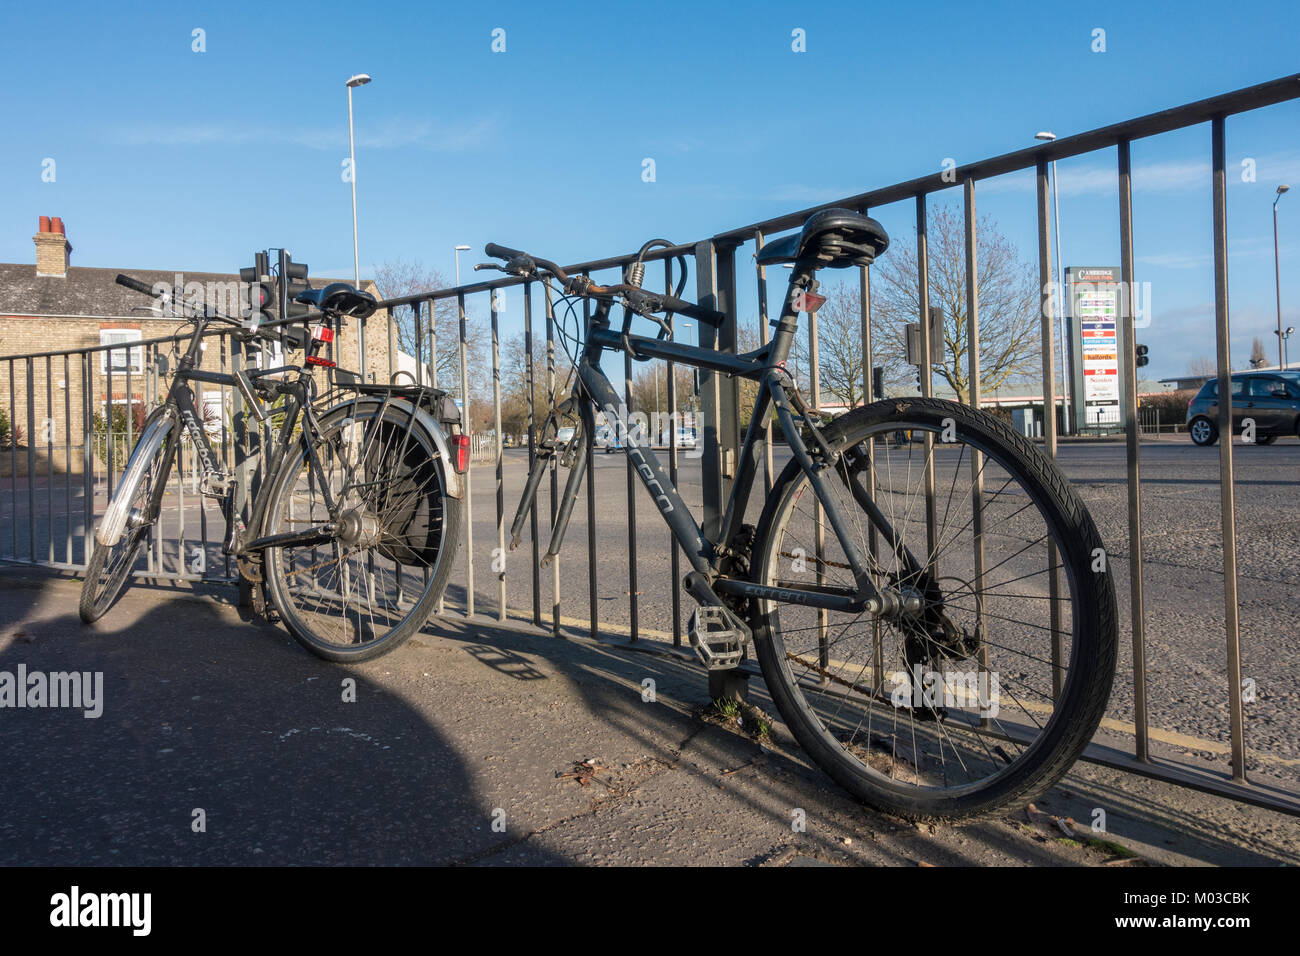 bicycle-without-front-wheel-M03CBK.jpg